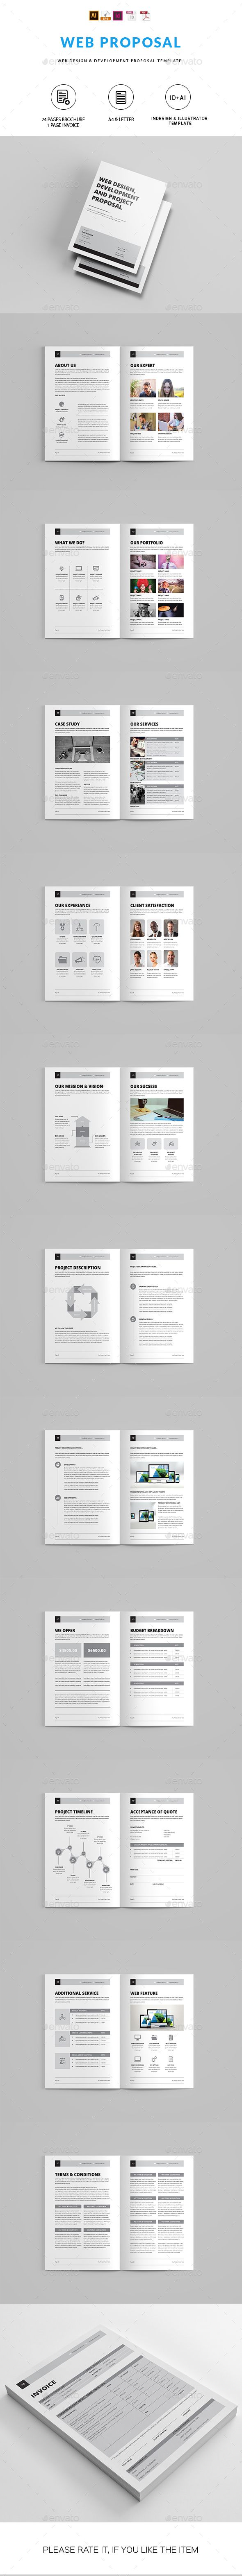 Minimal Proposal Template Vector Eps Indesign Indd Ai Illustrator